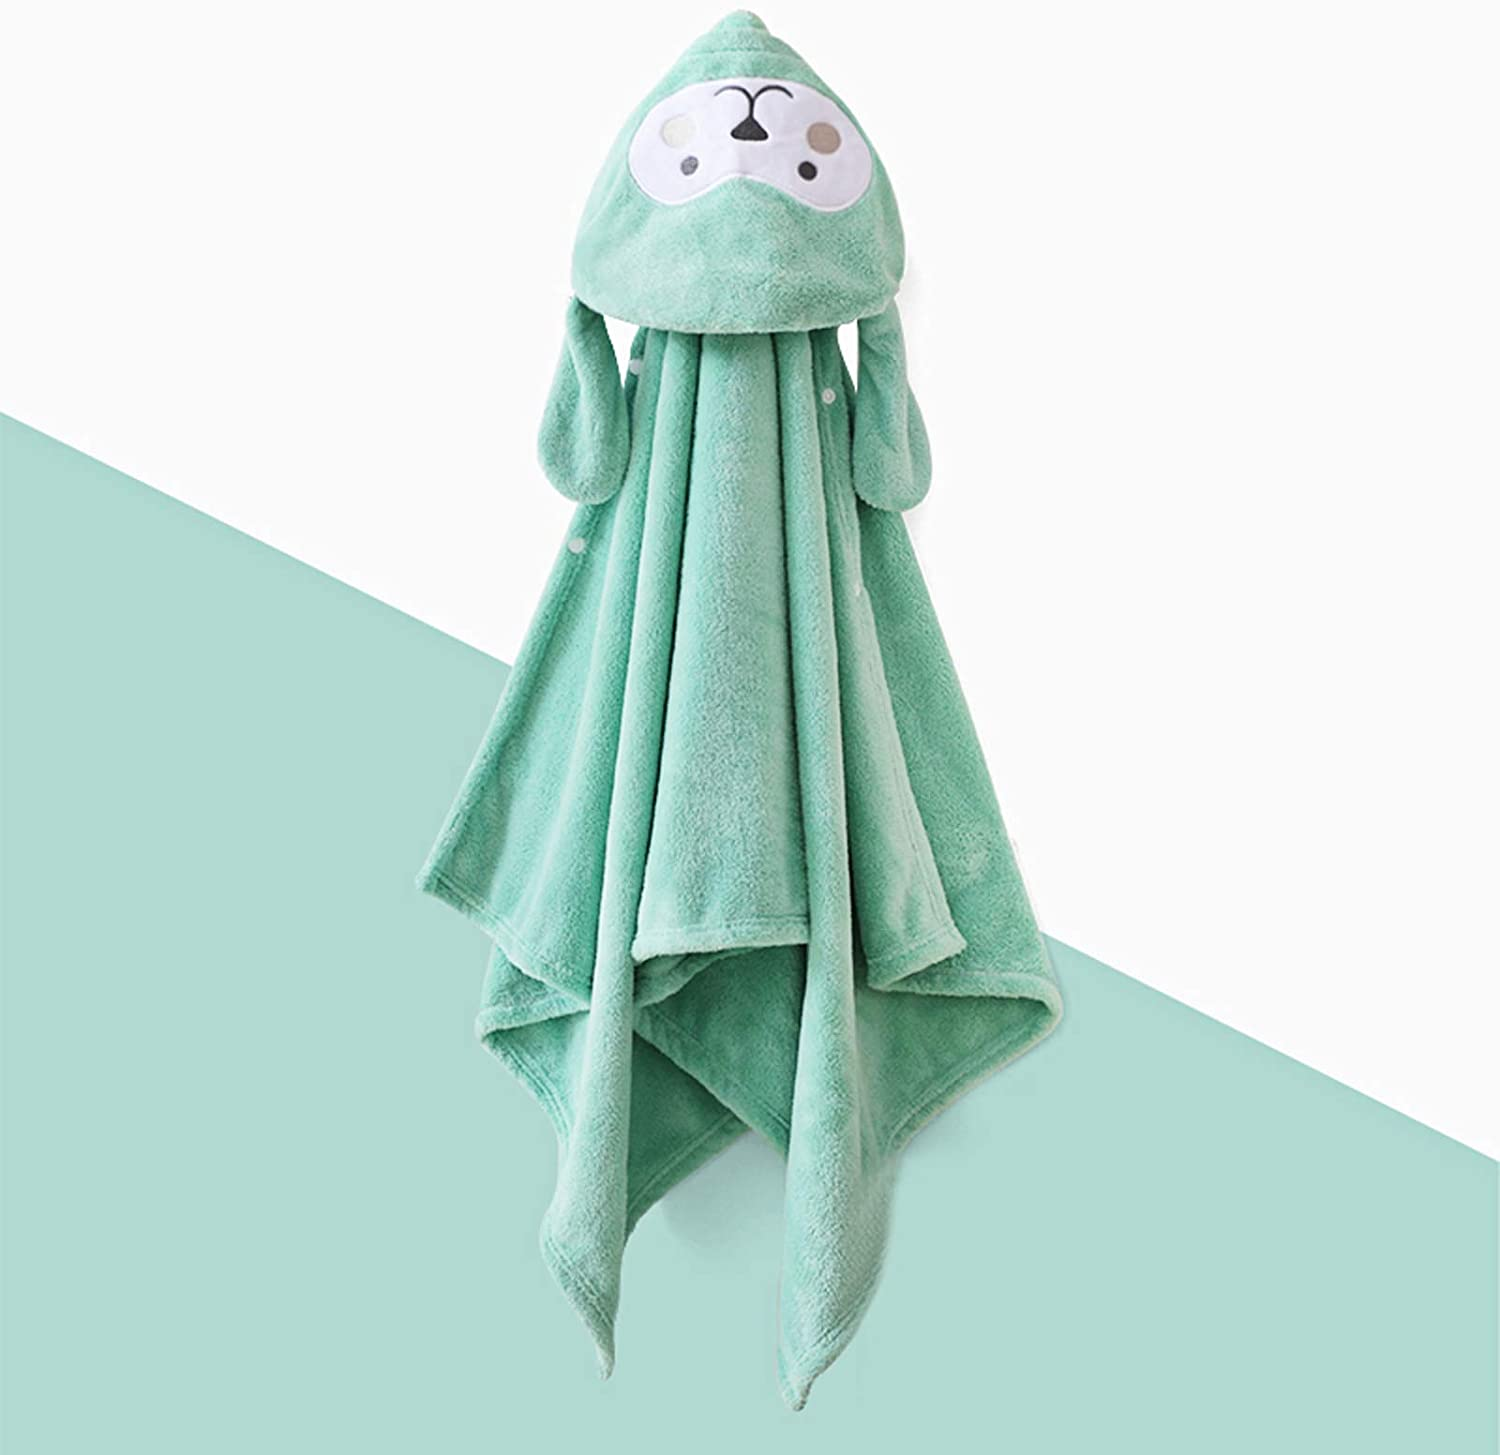 Low price LYHXXX Hooded Manufacturer regenerated product Towel Wrap Premium Towe Girls